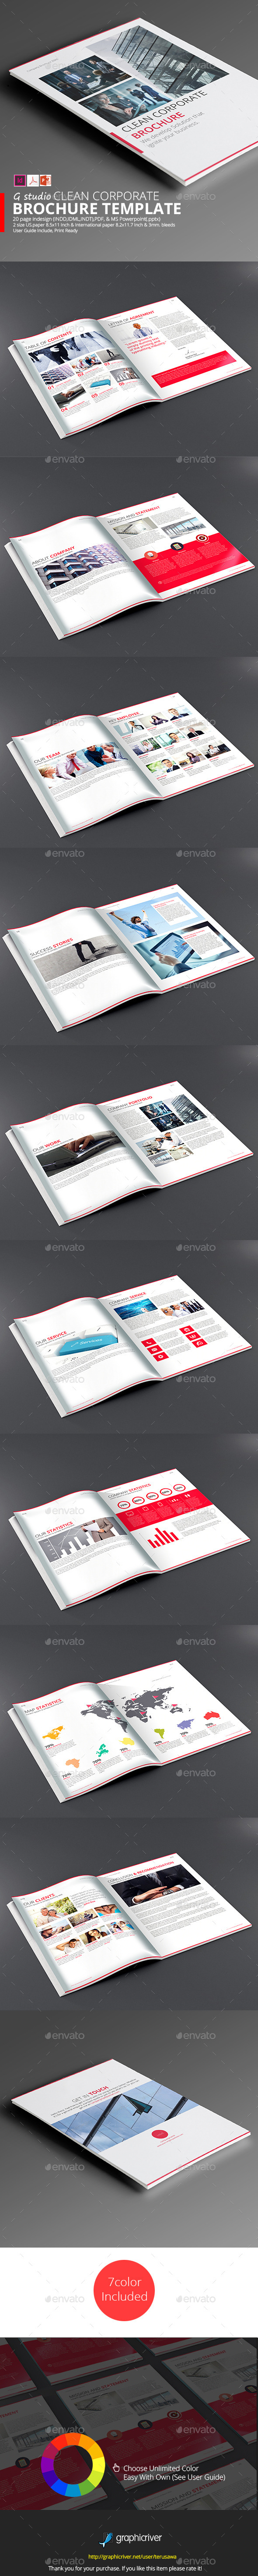 Clean Corporate Brochure Template - Corporate Brochures